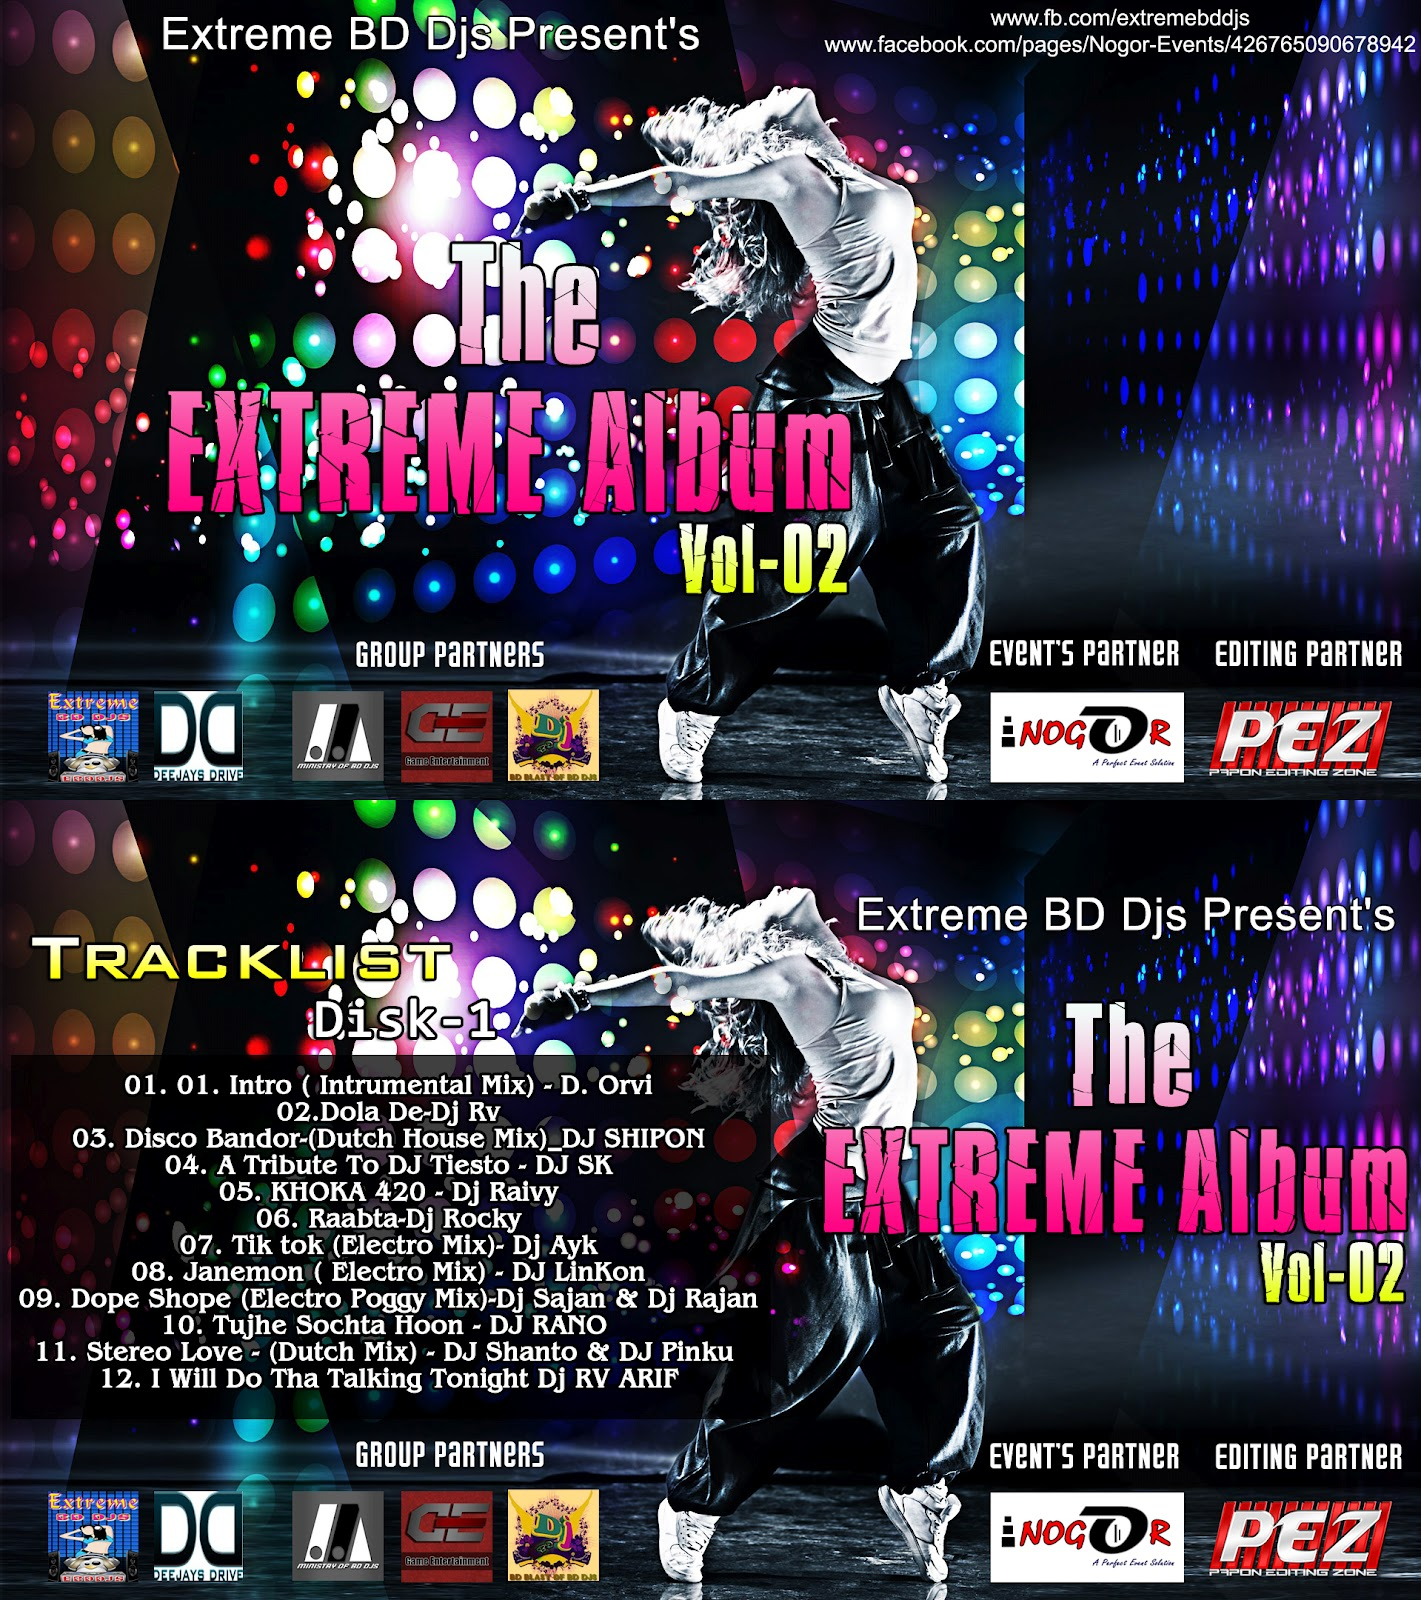 Chahunga Mai Tujhe Satyajit Mp3: EXTREME BD DJs: The EXTREME Album Vol